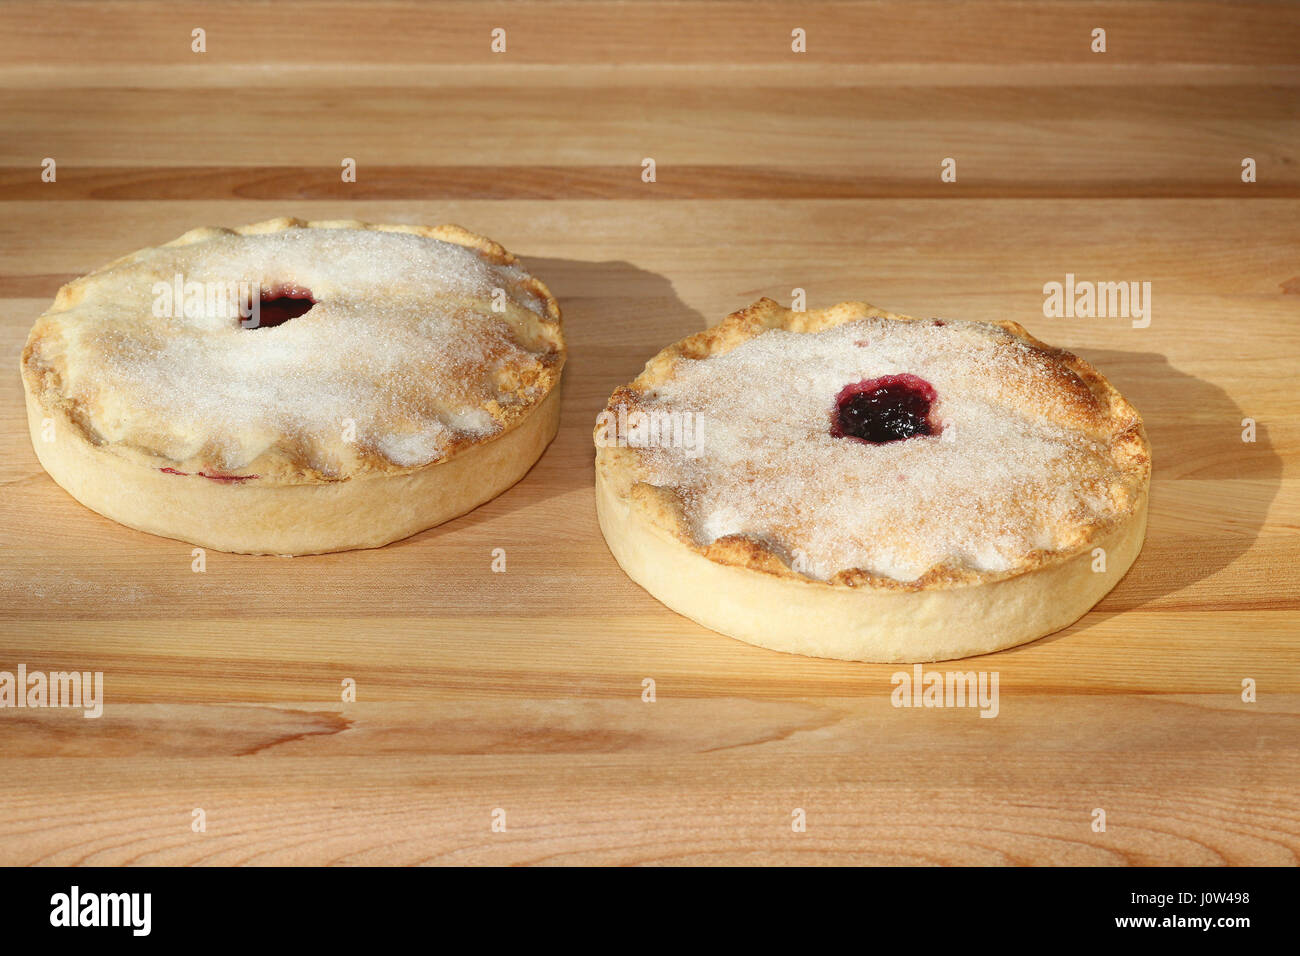 Cherry pie and and blueberry pie sprinkled with sugar on pastry board - Stock Image